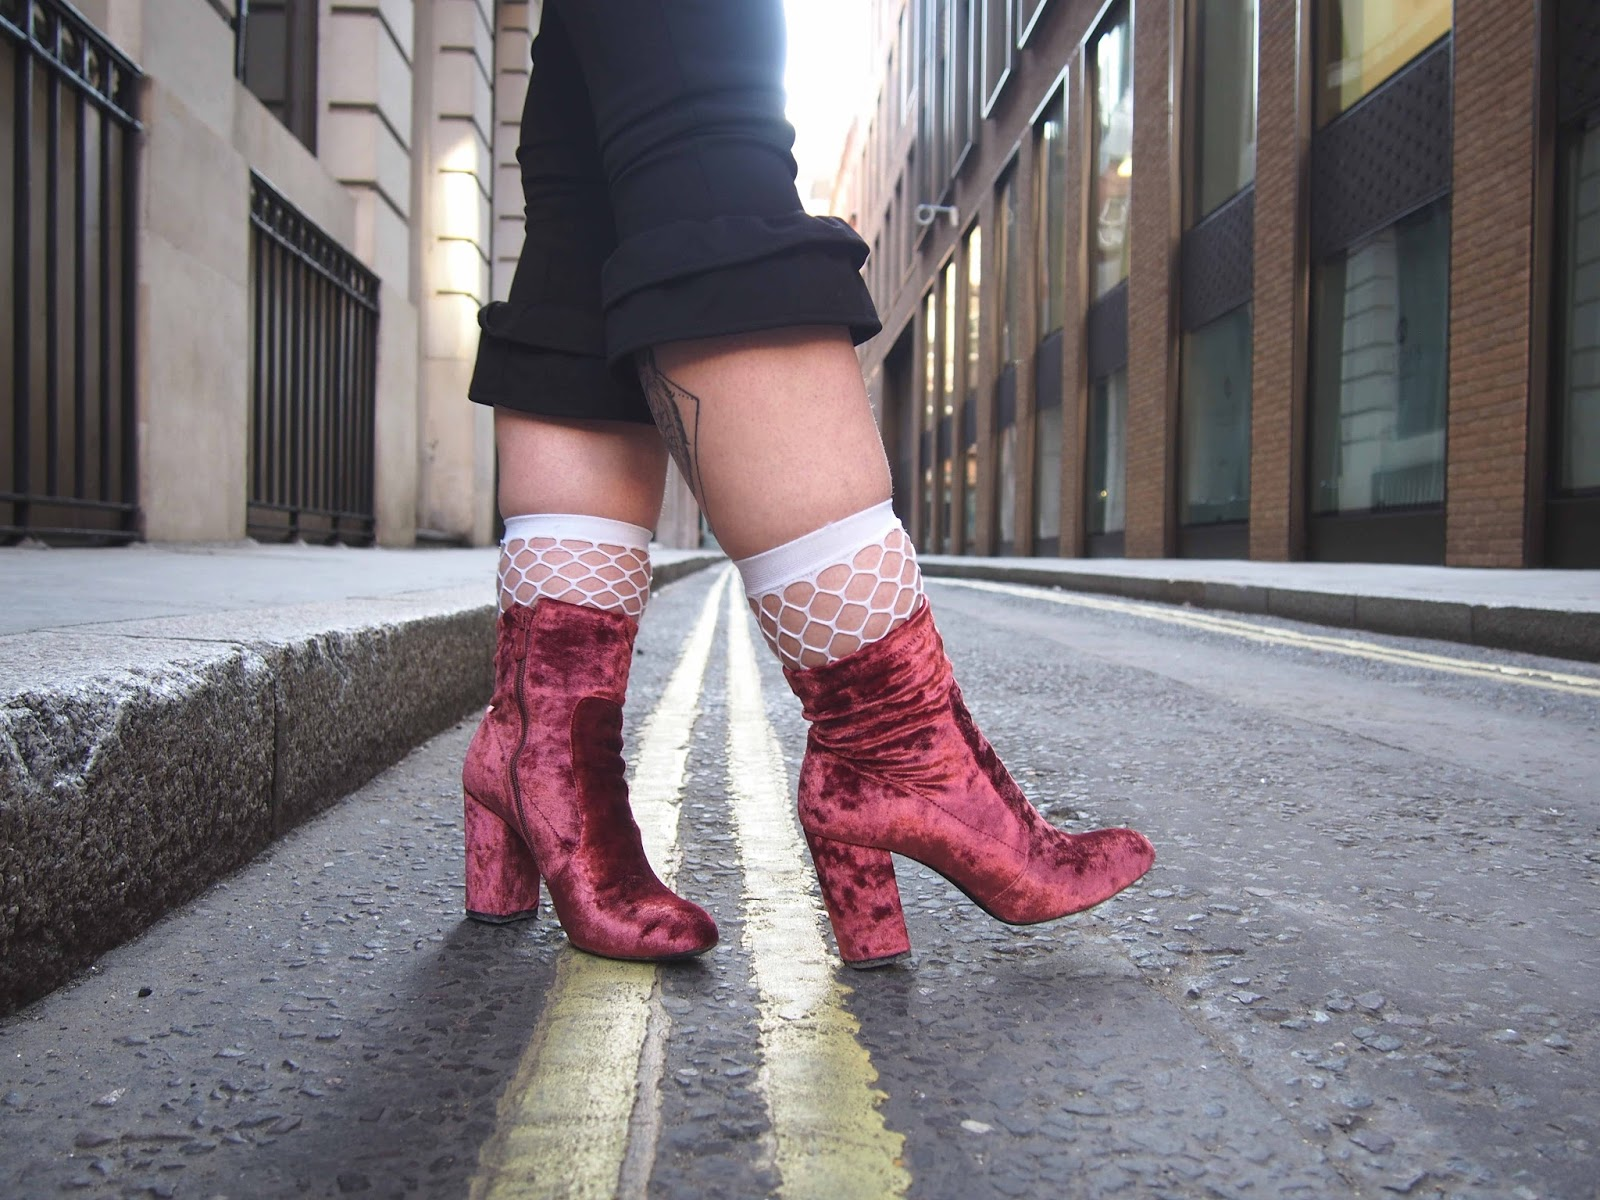 spring outfit, spring outfit ideas, fashion trend 2017, 2017 ss fashion trend, gunge outfit ideas, grunge outfits, fishnet socks, go away slogan top 1